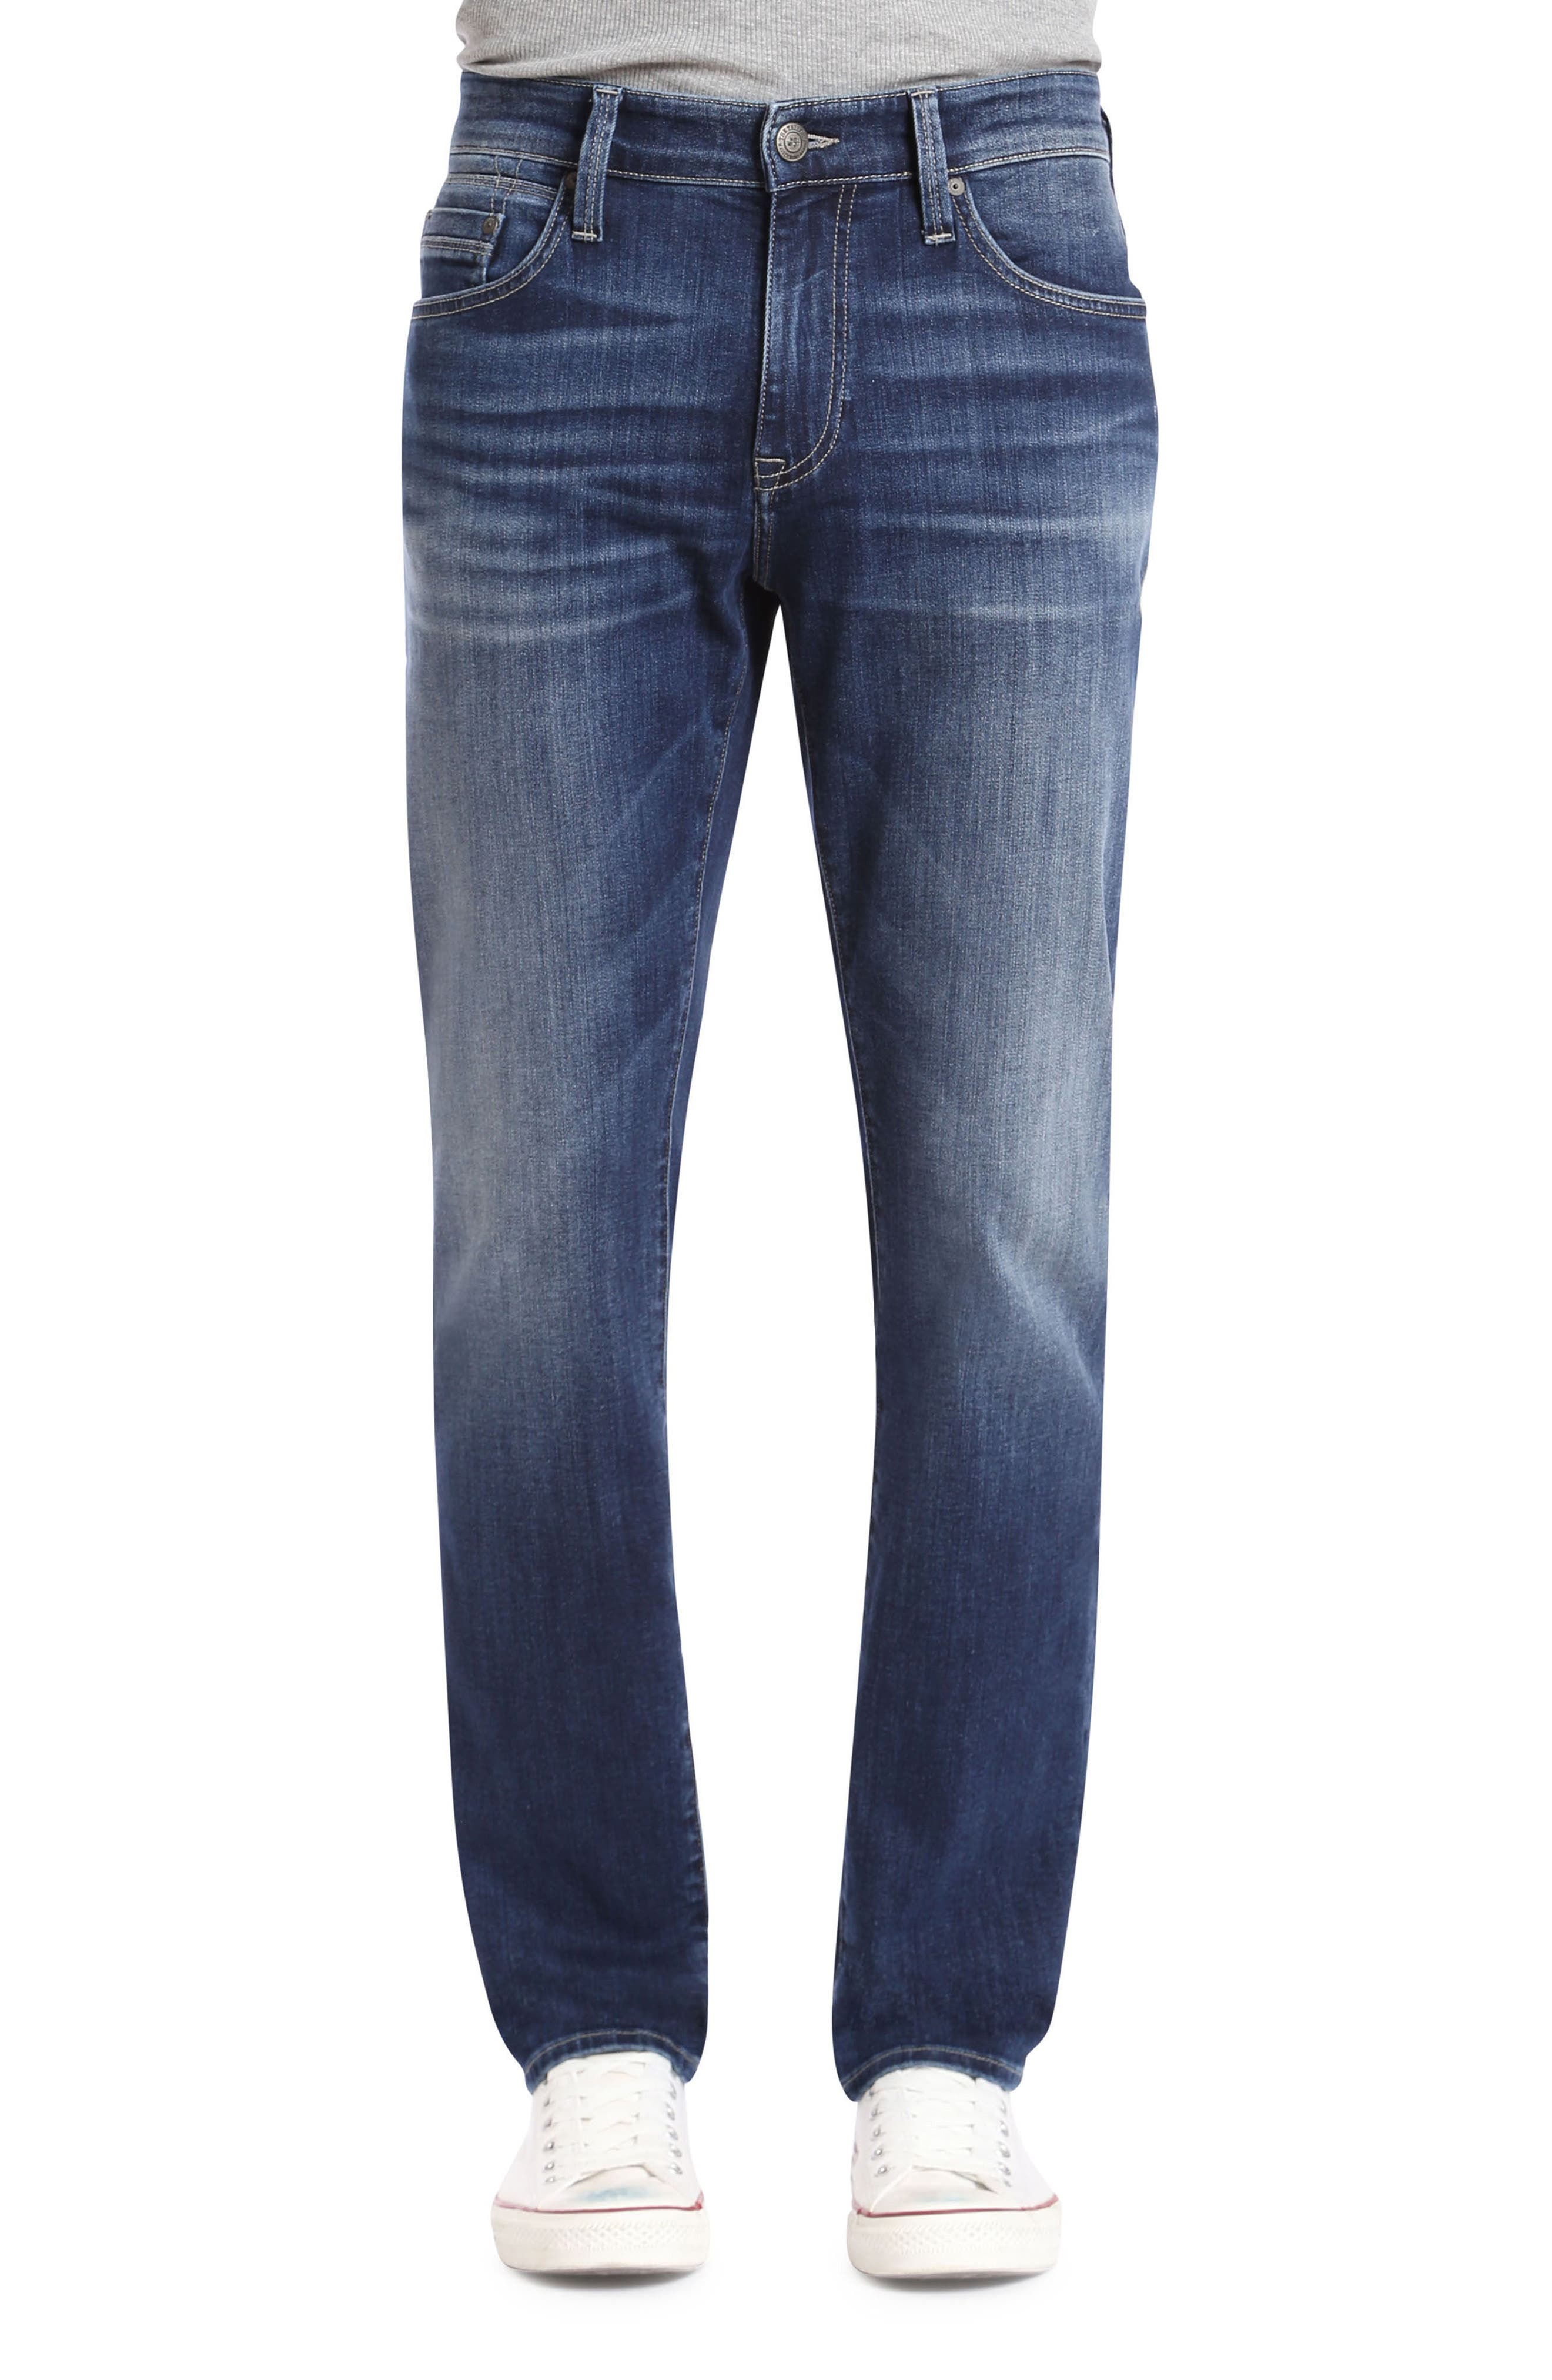 Marcus Slim Straight Leg Jeans,                         Main,                         color, Dark Blue Williamsburg